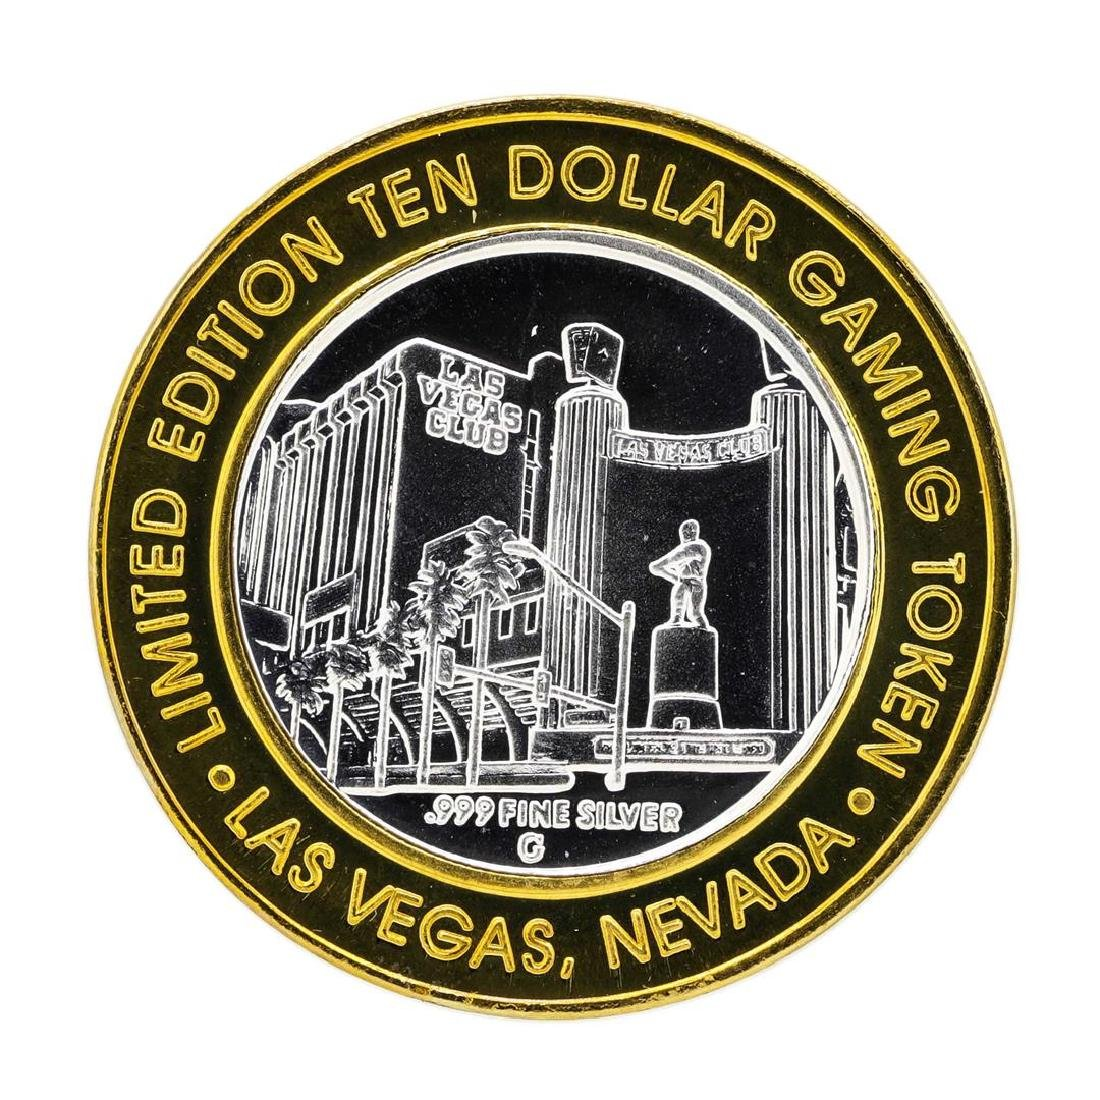 .999 Silver Las Vegas Club $10 Limited Edition Casino